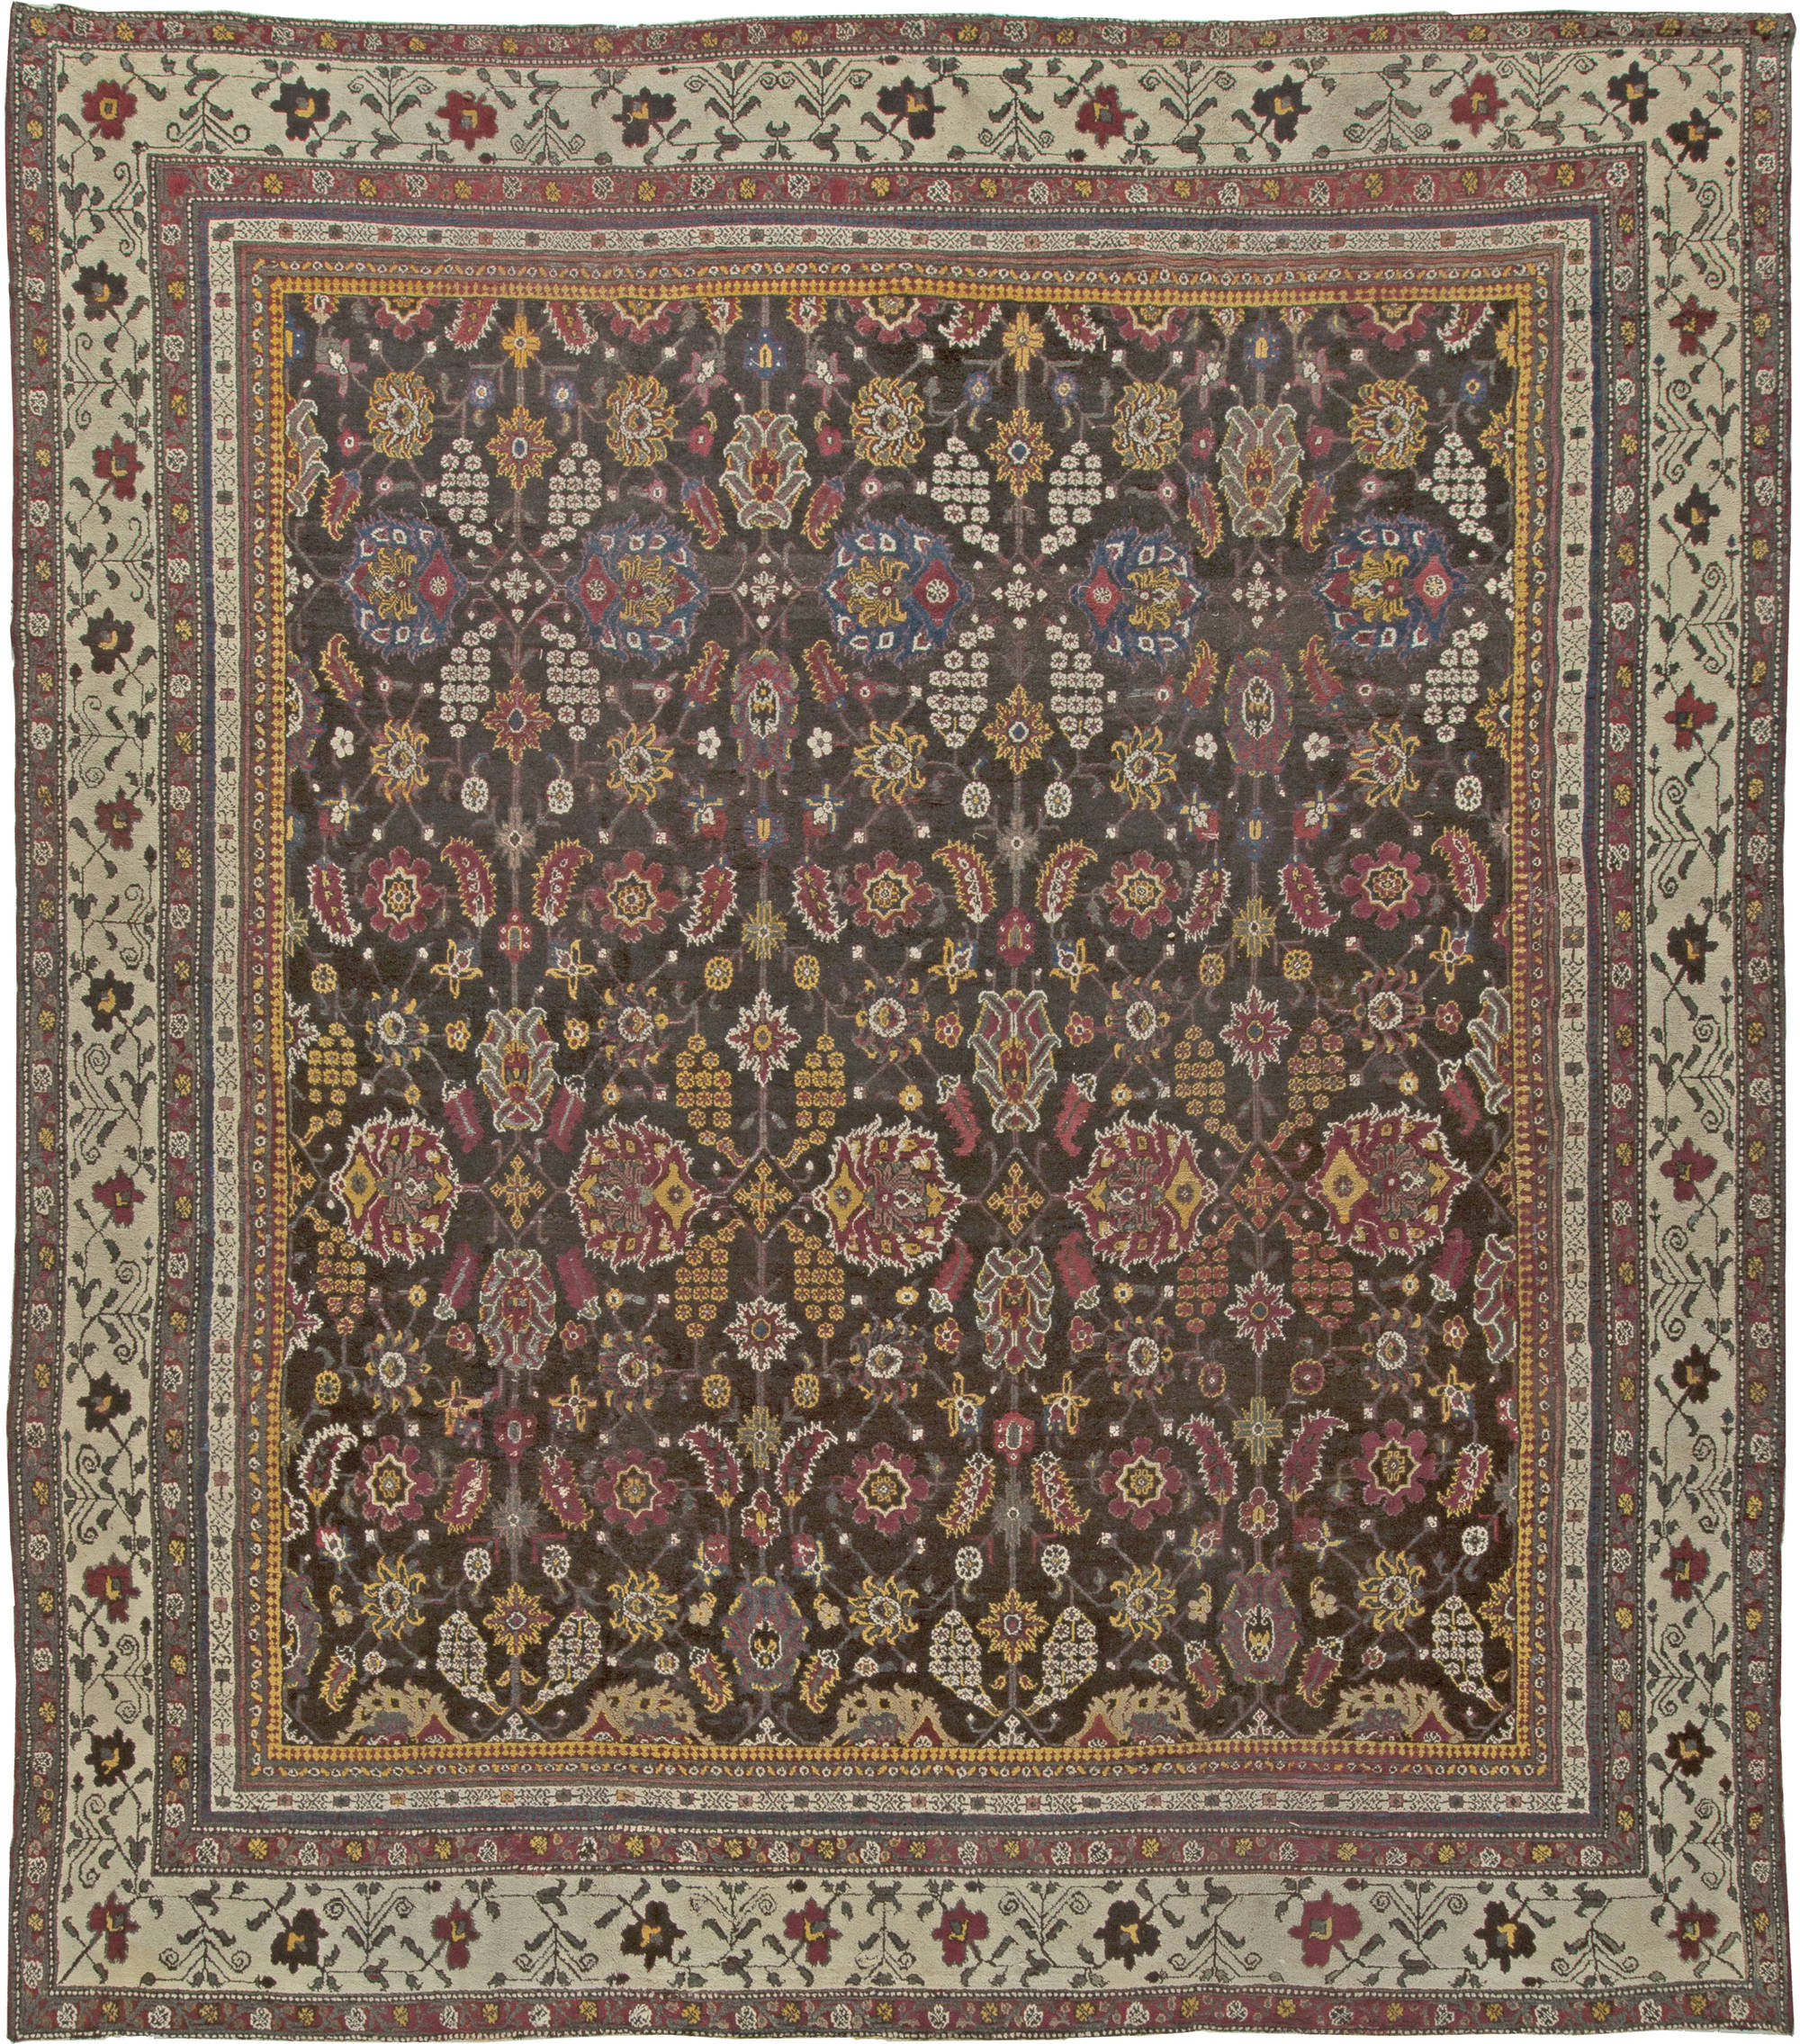 Indian Rugs, Dhurrie Area Carpets For Sale (Antique